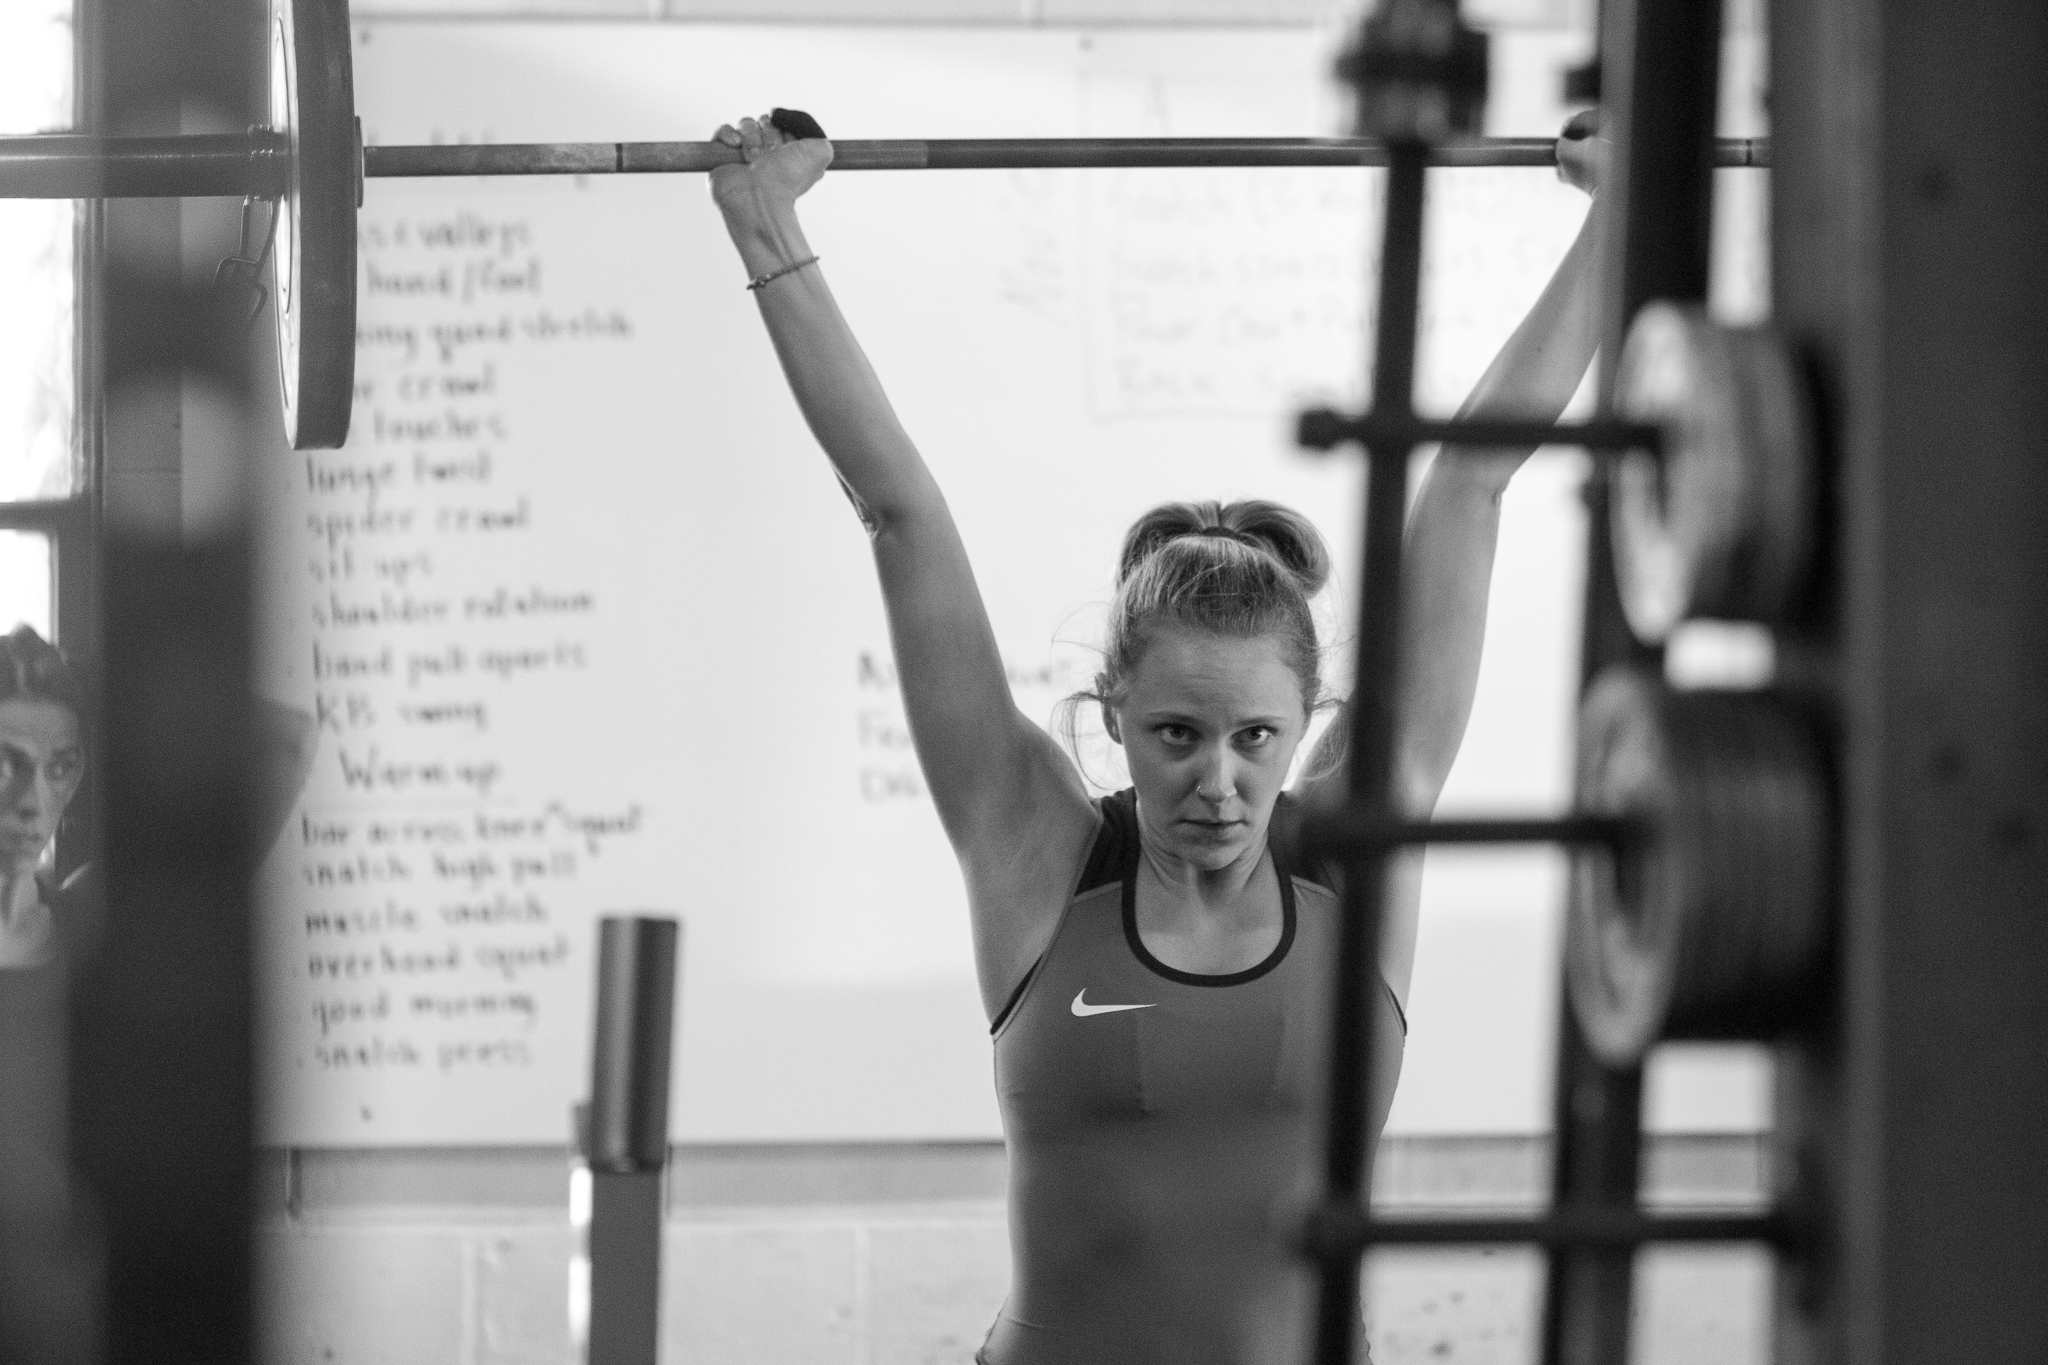 warwick-new-york-intrepid-strength-conditioning-winter-open-weightlifting-meet-weightlifting-photography (10 of 15).jpg